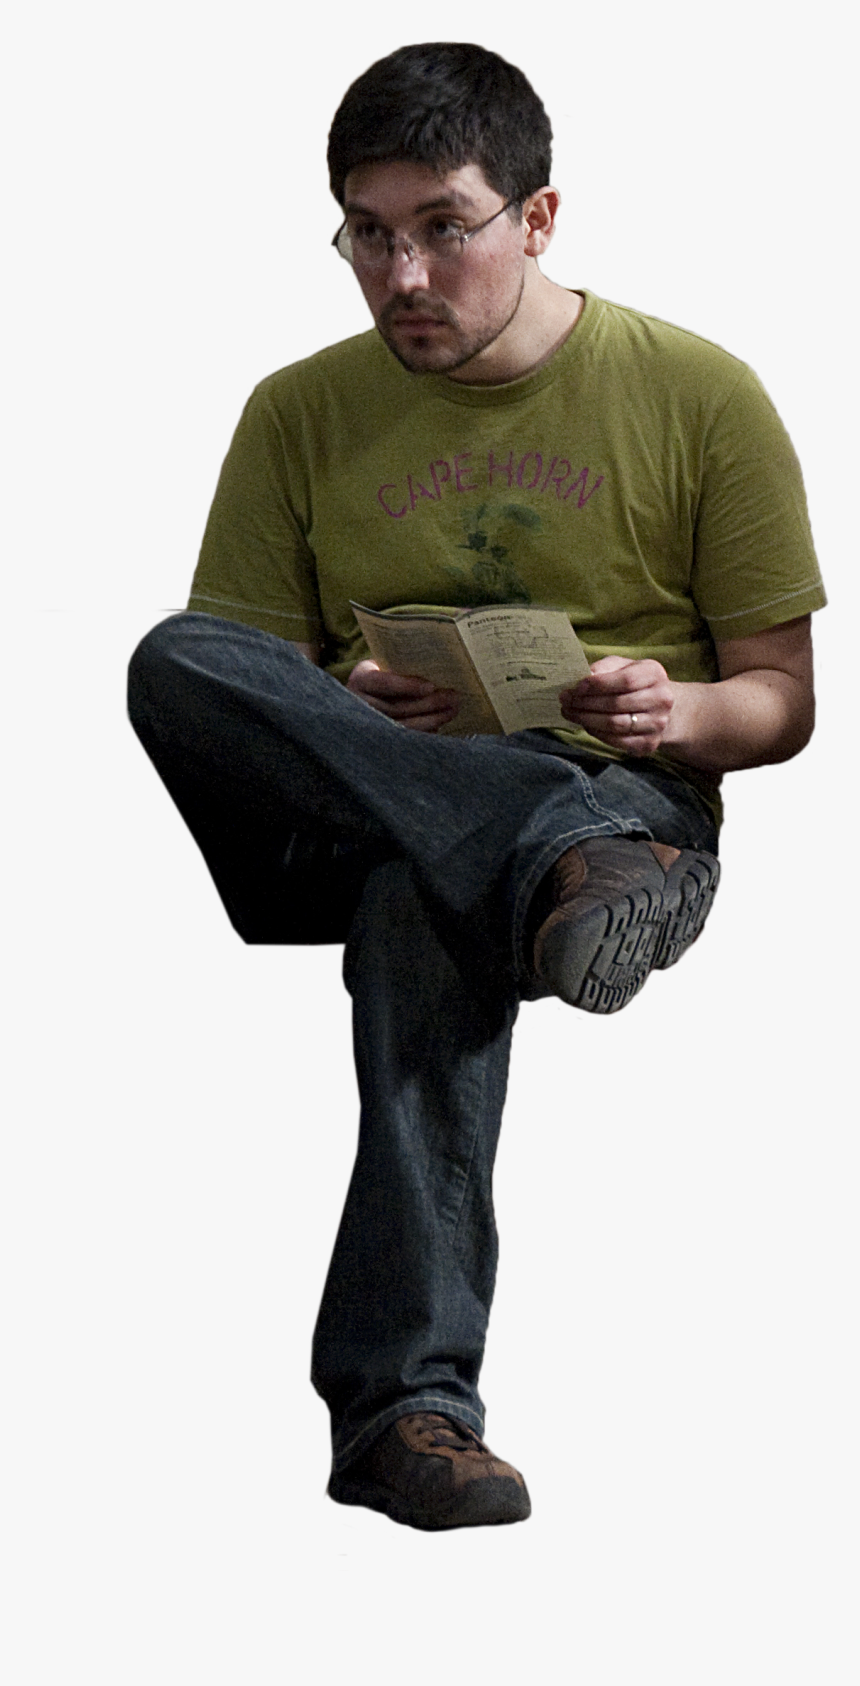 People Sitting Front View Png - Person Sitting Front Png, Transparent Png, Free Download